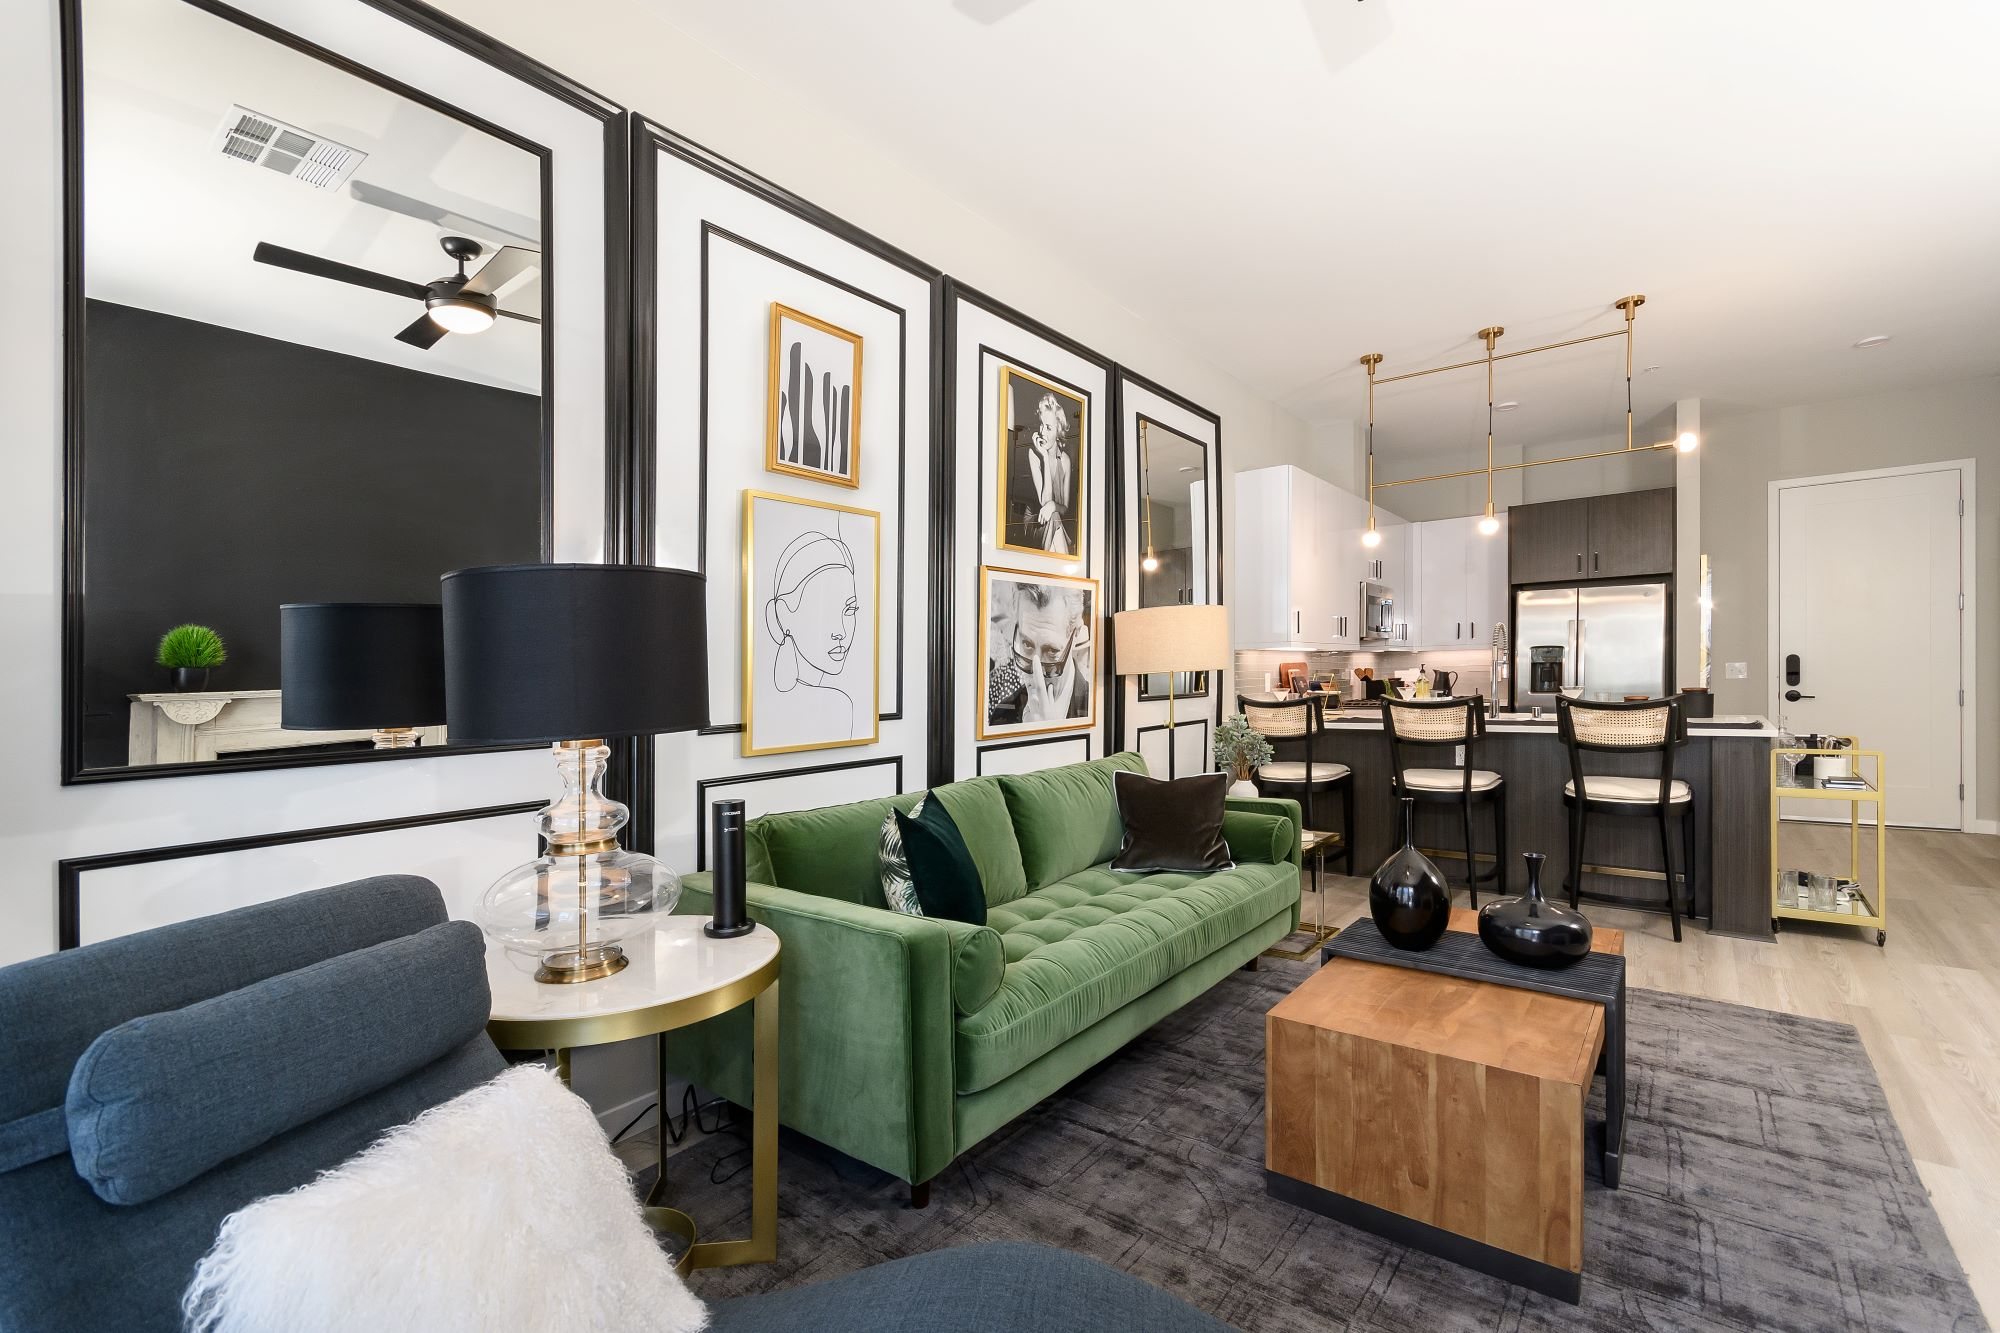 furnished apartment living room and kitchen at Auric Symphony Park in Las Vegas